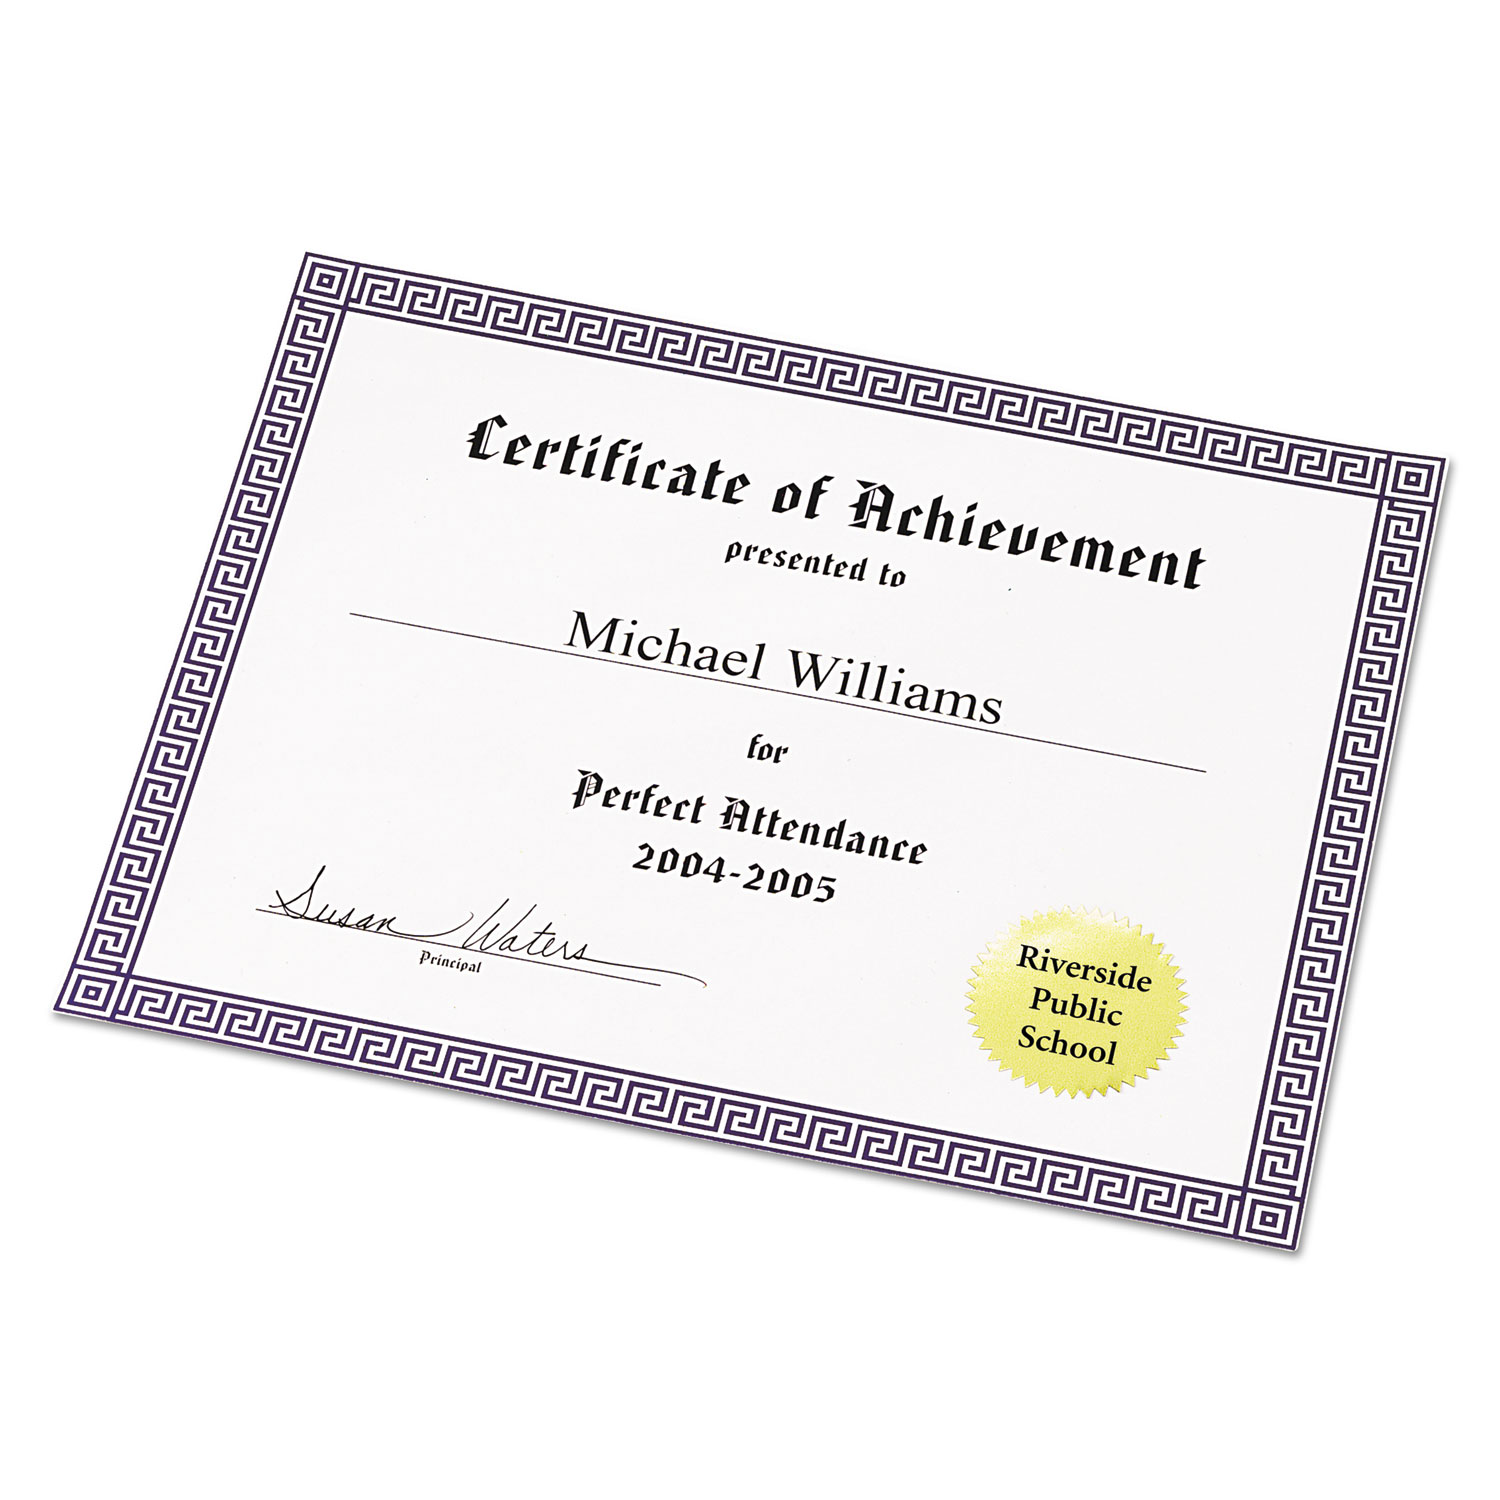 Fresh pics of birth certificate louisiana business cards and birth certificate nonsense birthcertificate louisiana free meal xflitez Gallery